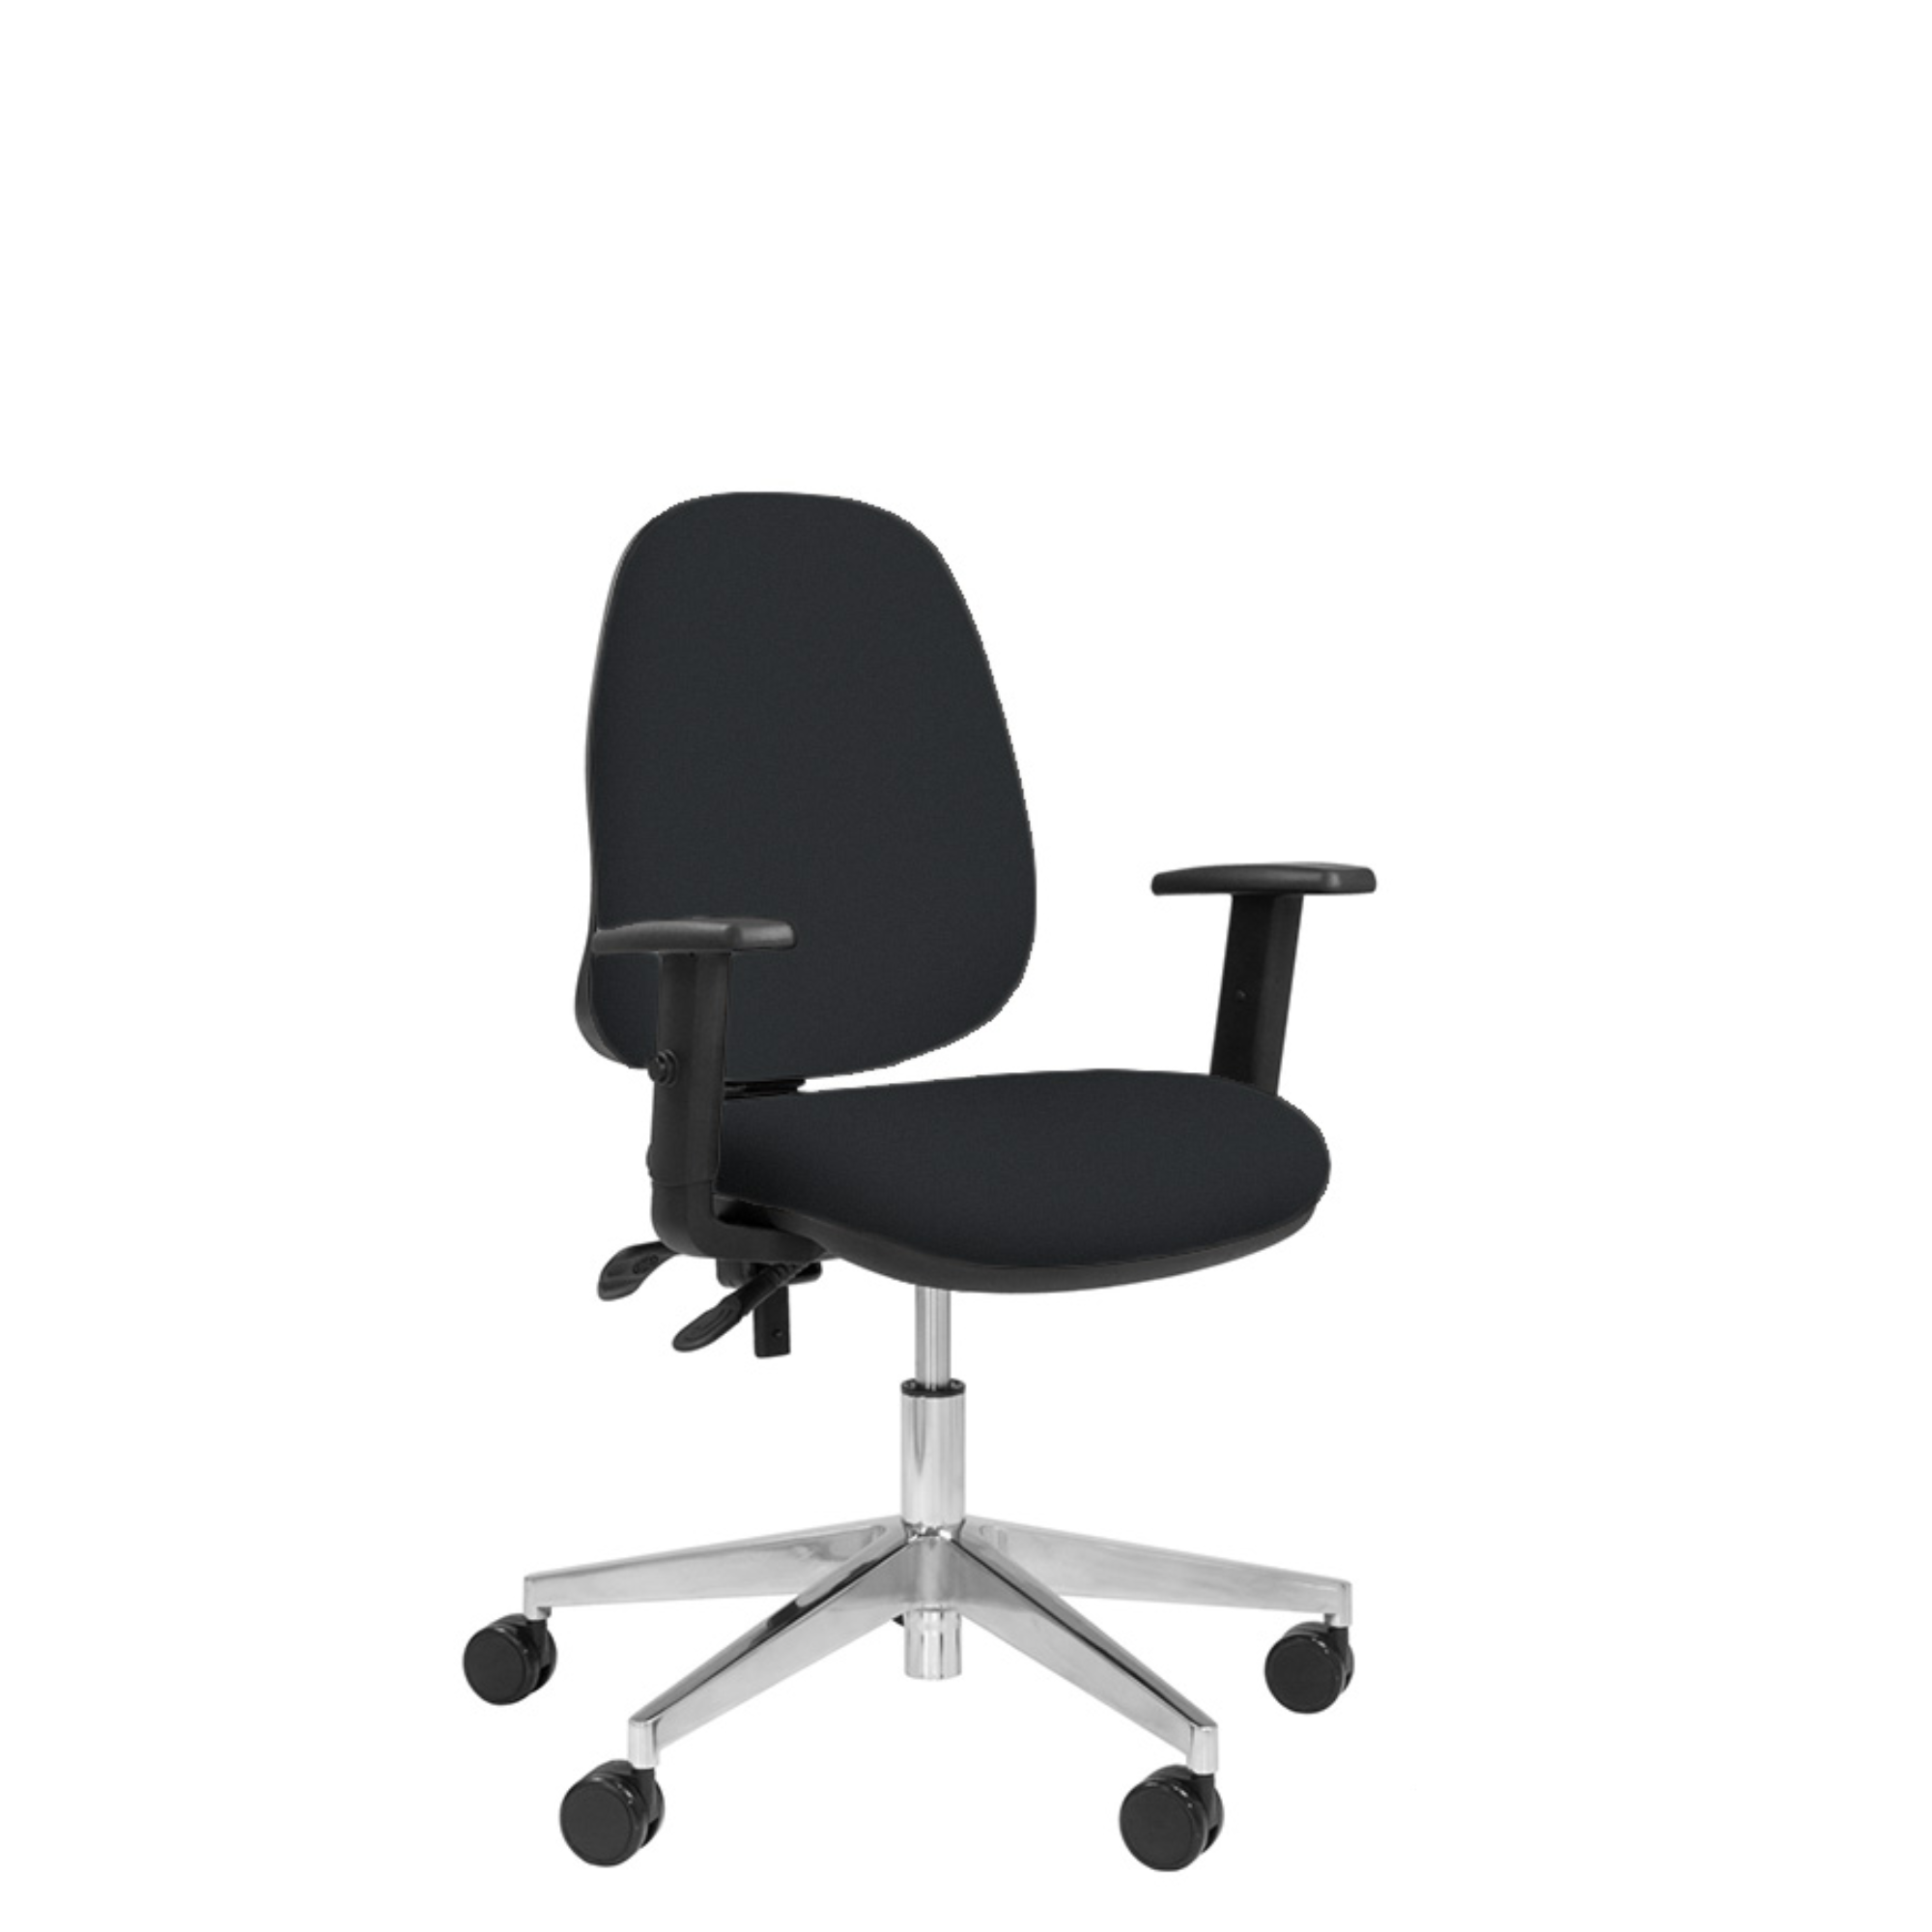 Elite Office Havana Upholstered Operator Chair